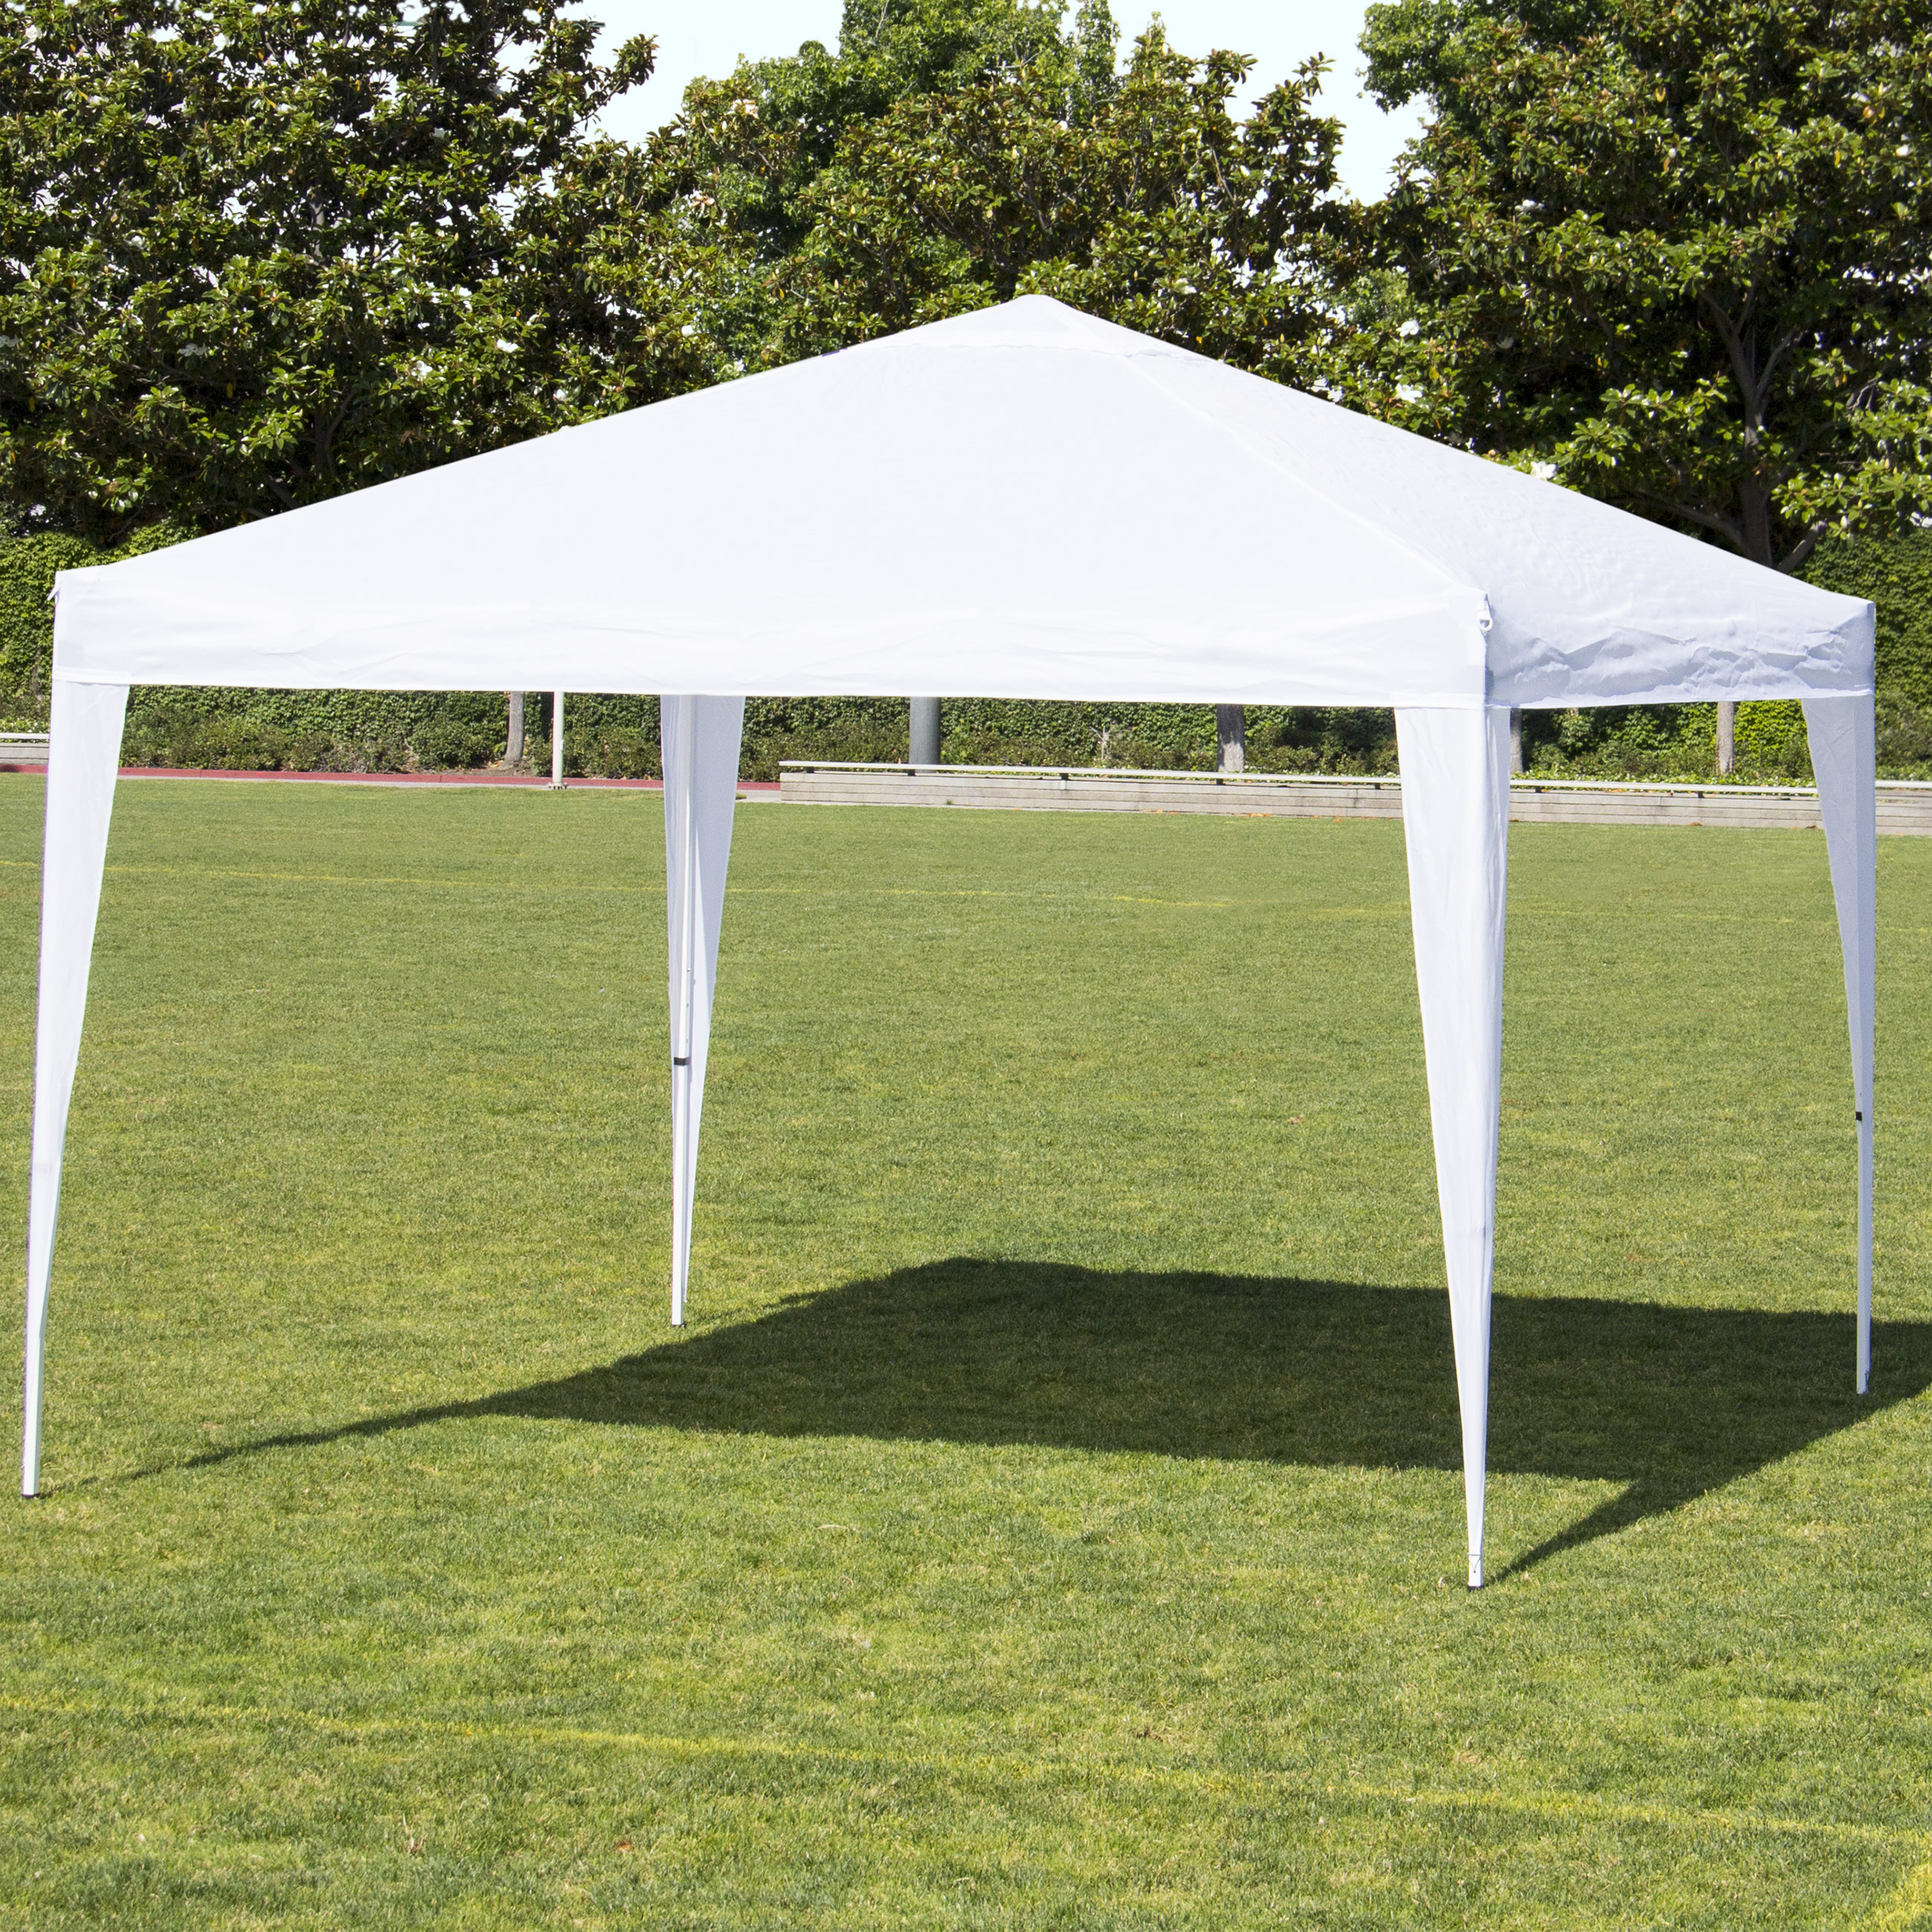 Zimtown Outdoor 10u0027x10u0027 EZ Pop Up Tent Gazebo White Canopy With Carrying Bag & Zimtown Outdoor 10u0027x10u0027 EZ Pop Up Tent Gazebo White Canopy With ...